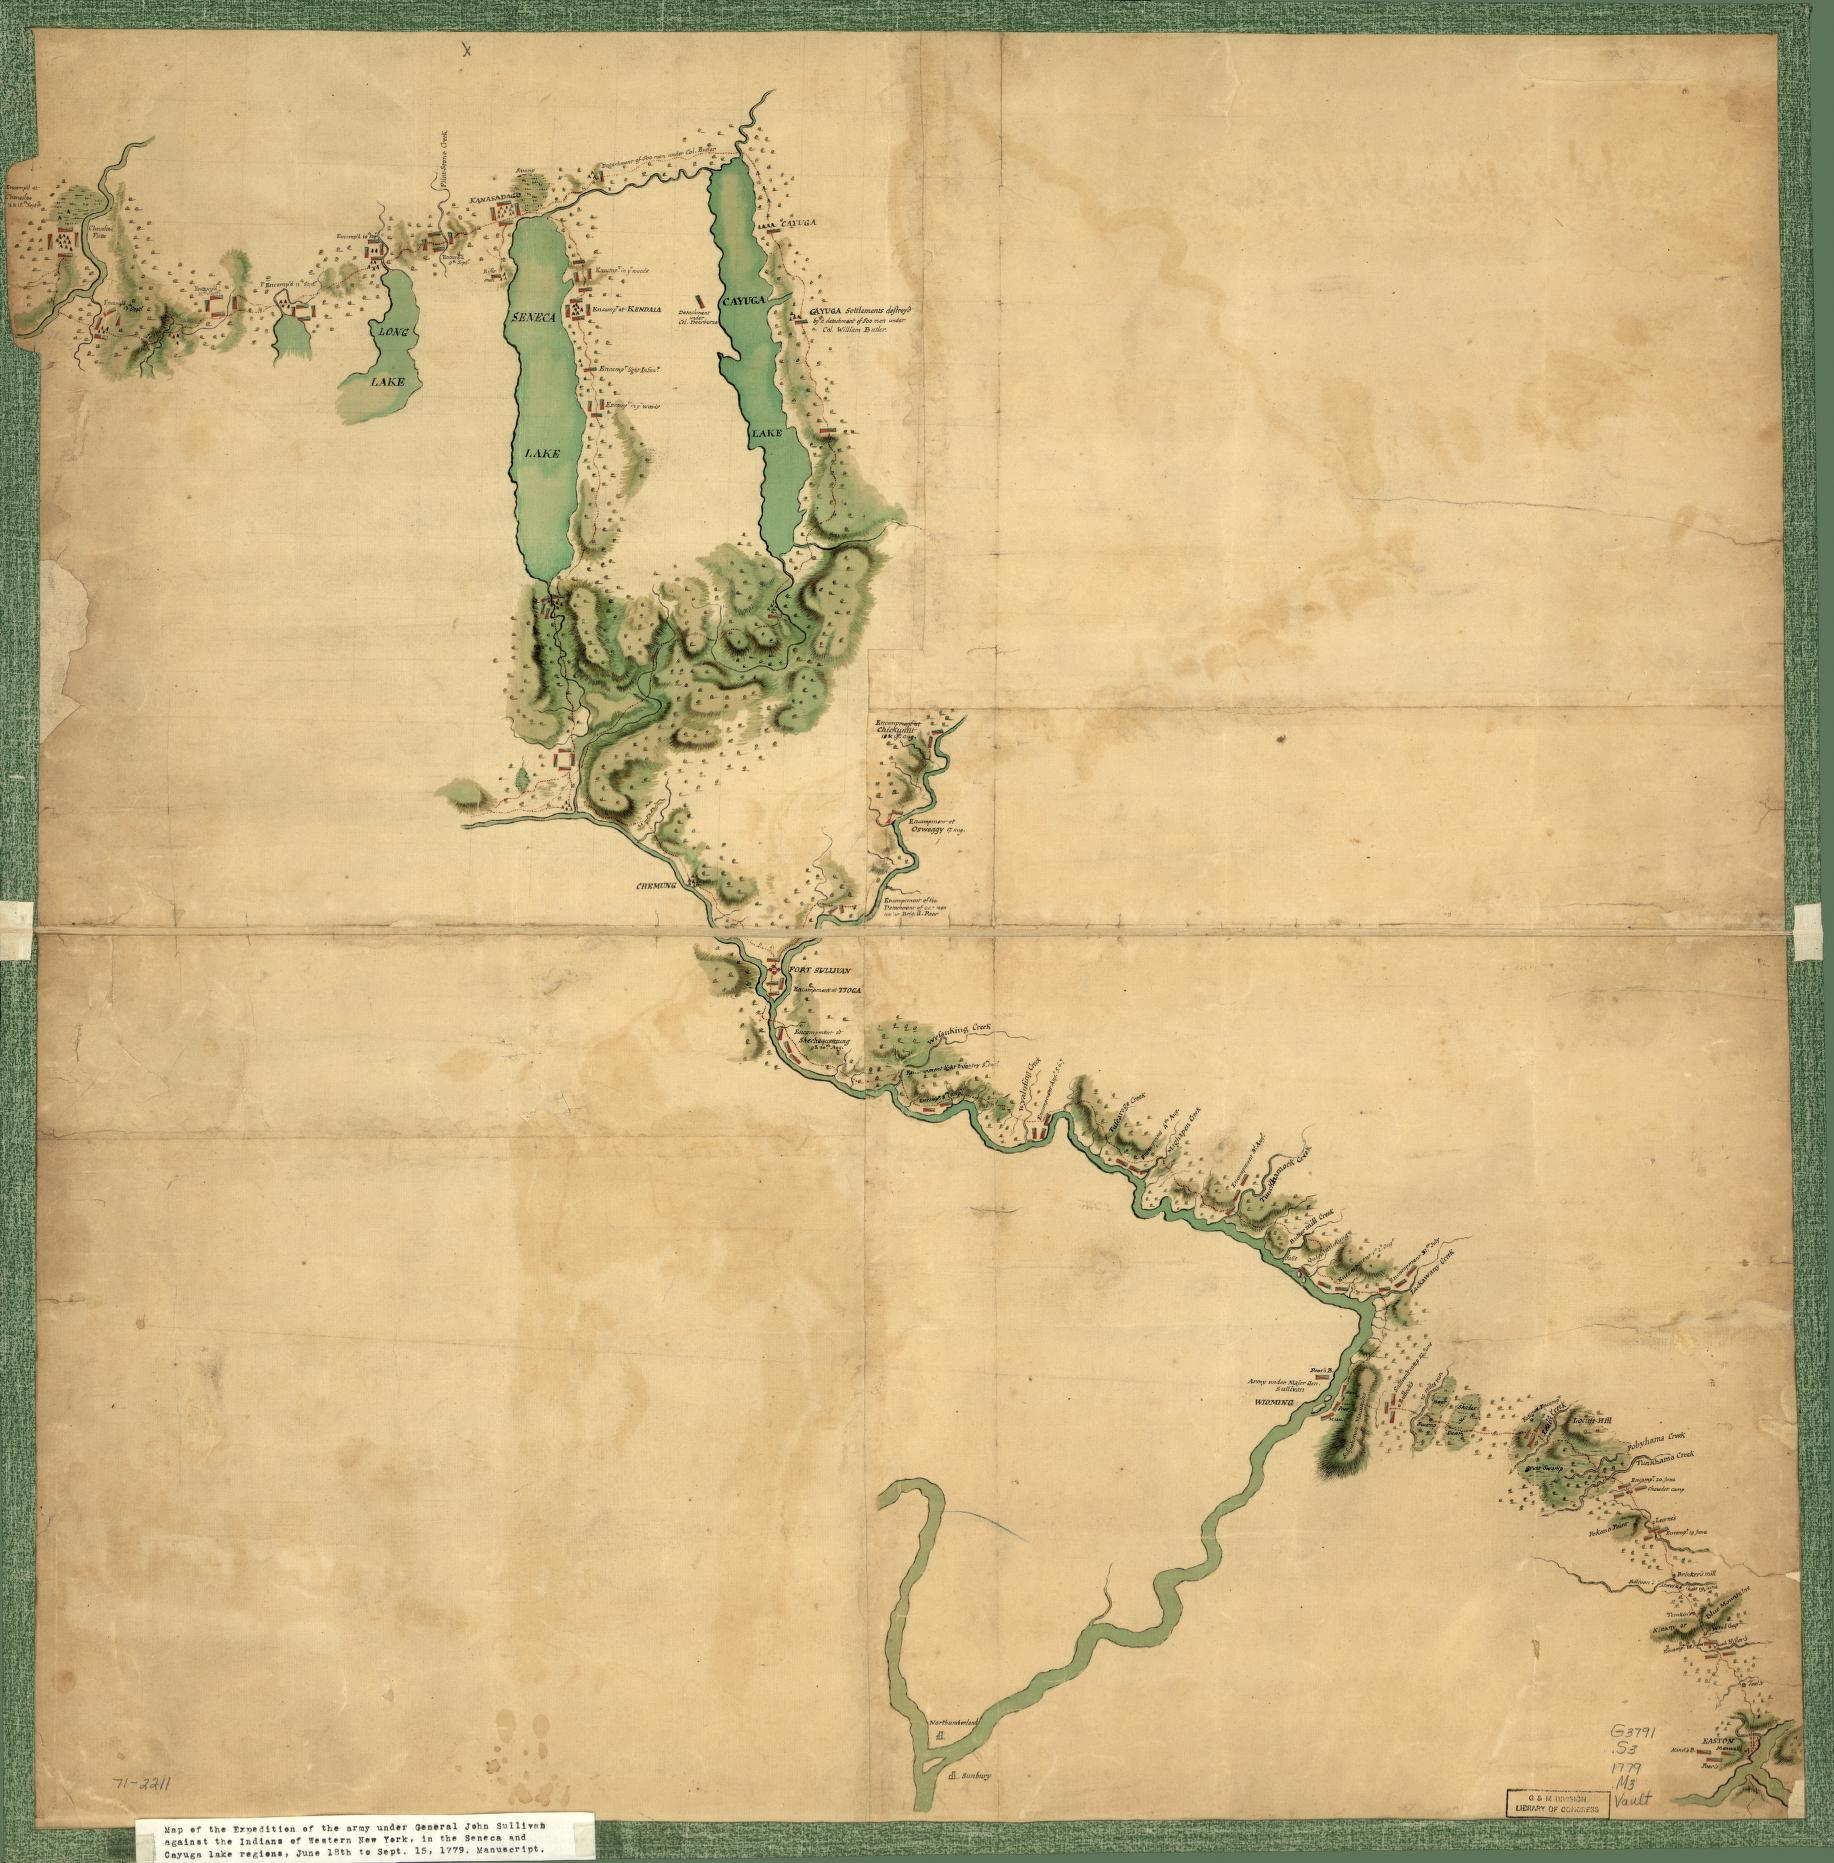 North America Political Outline Map%0A SULLIVAN u    S MARCH FROM EASTON TO THE SENACA  u     CAYUGA COUNTRIES  This  untitled and anonymous manuscript map bears this pasted on title given by  the Library of